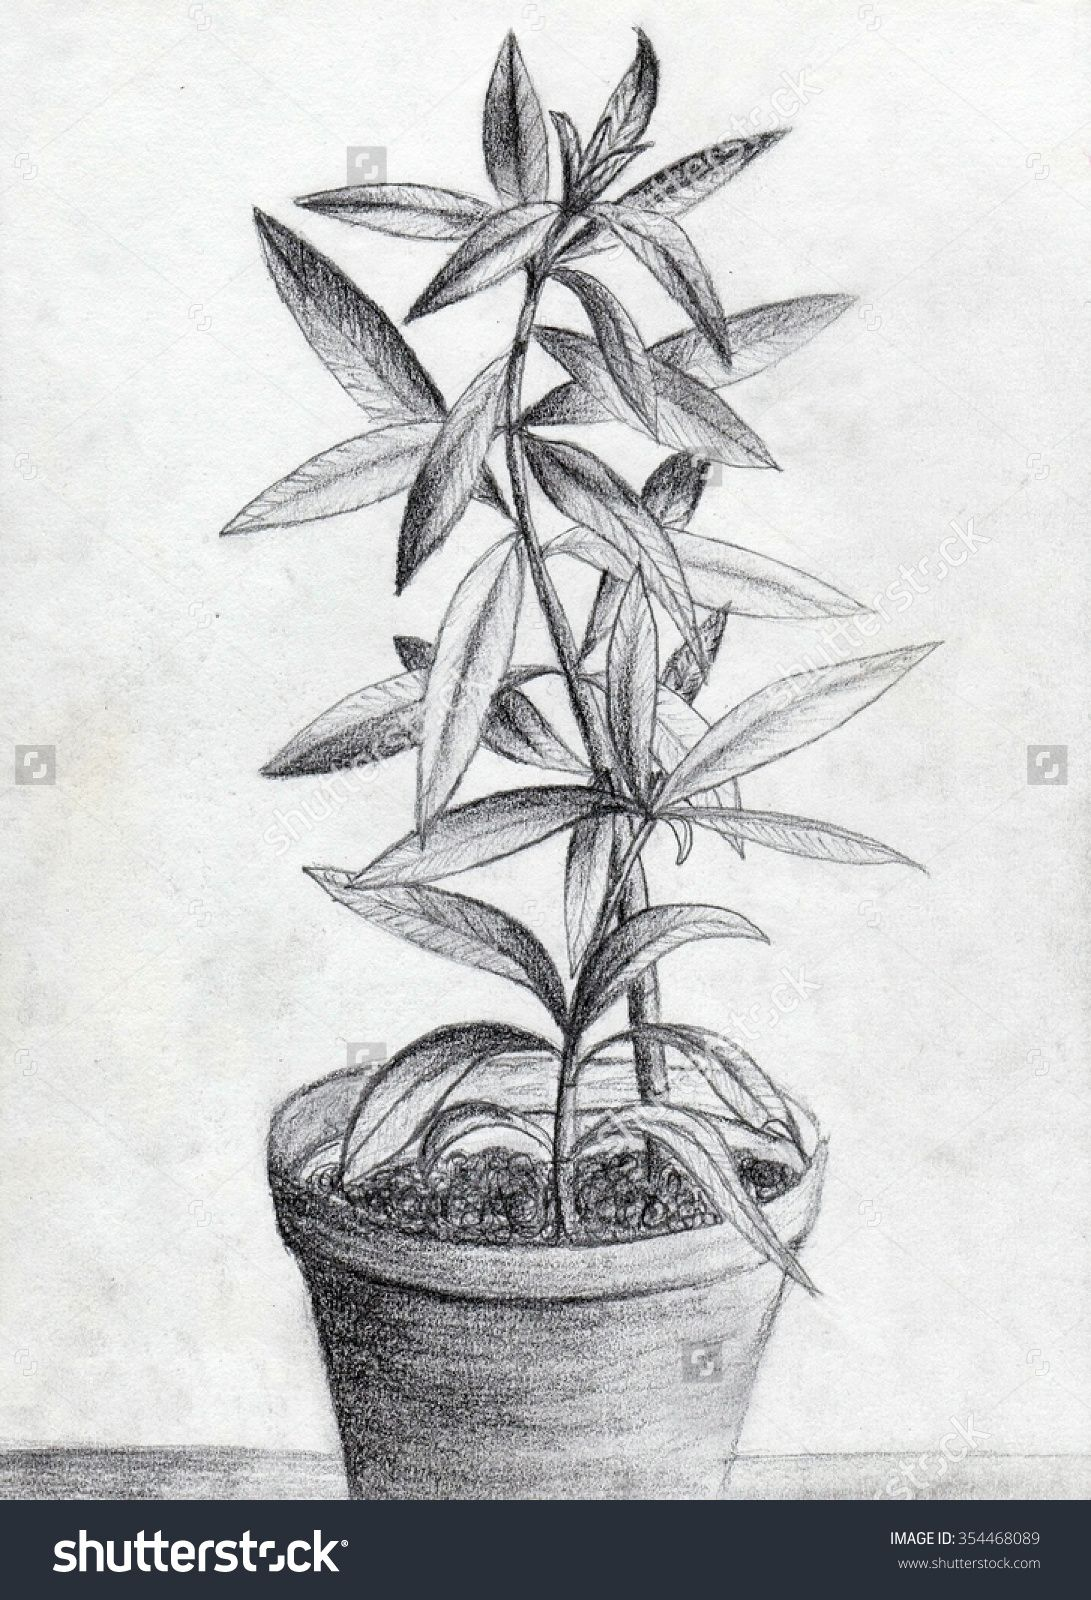 Image result for sketching plants Plant drawing, Pencil